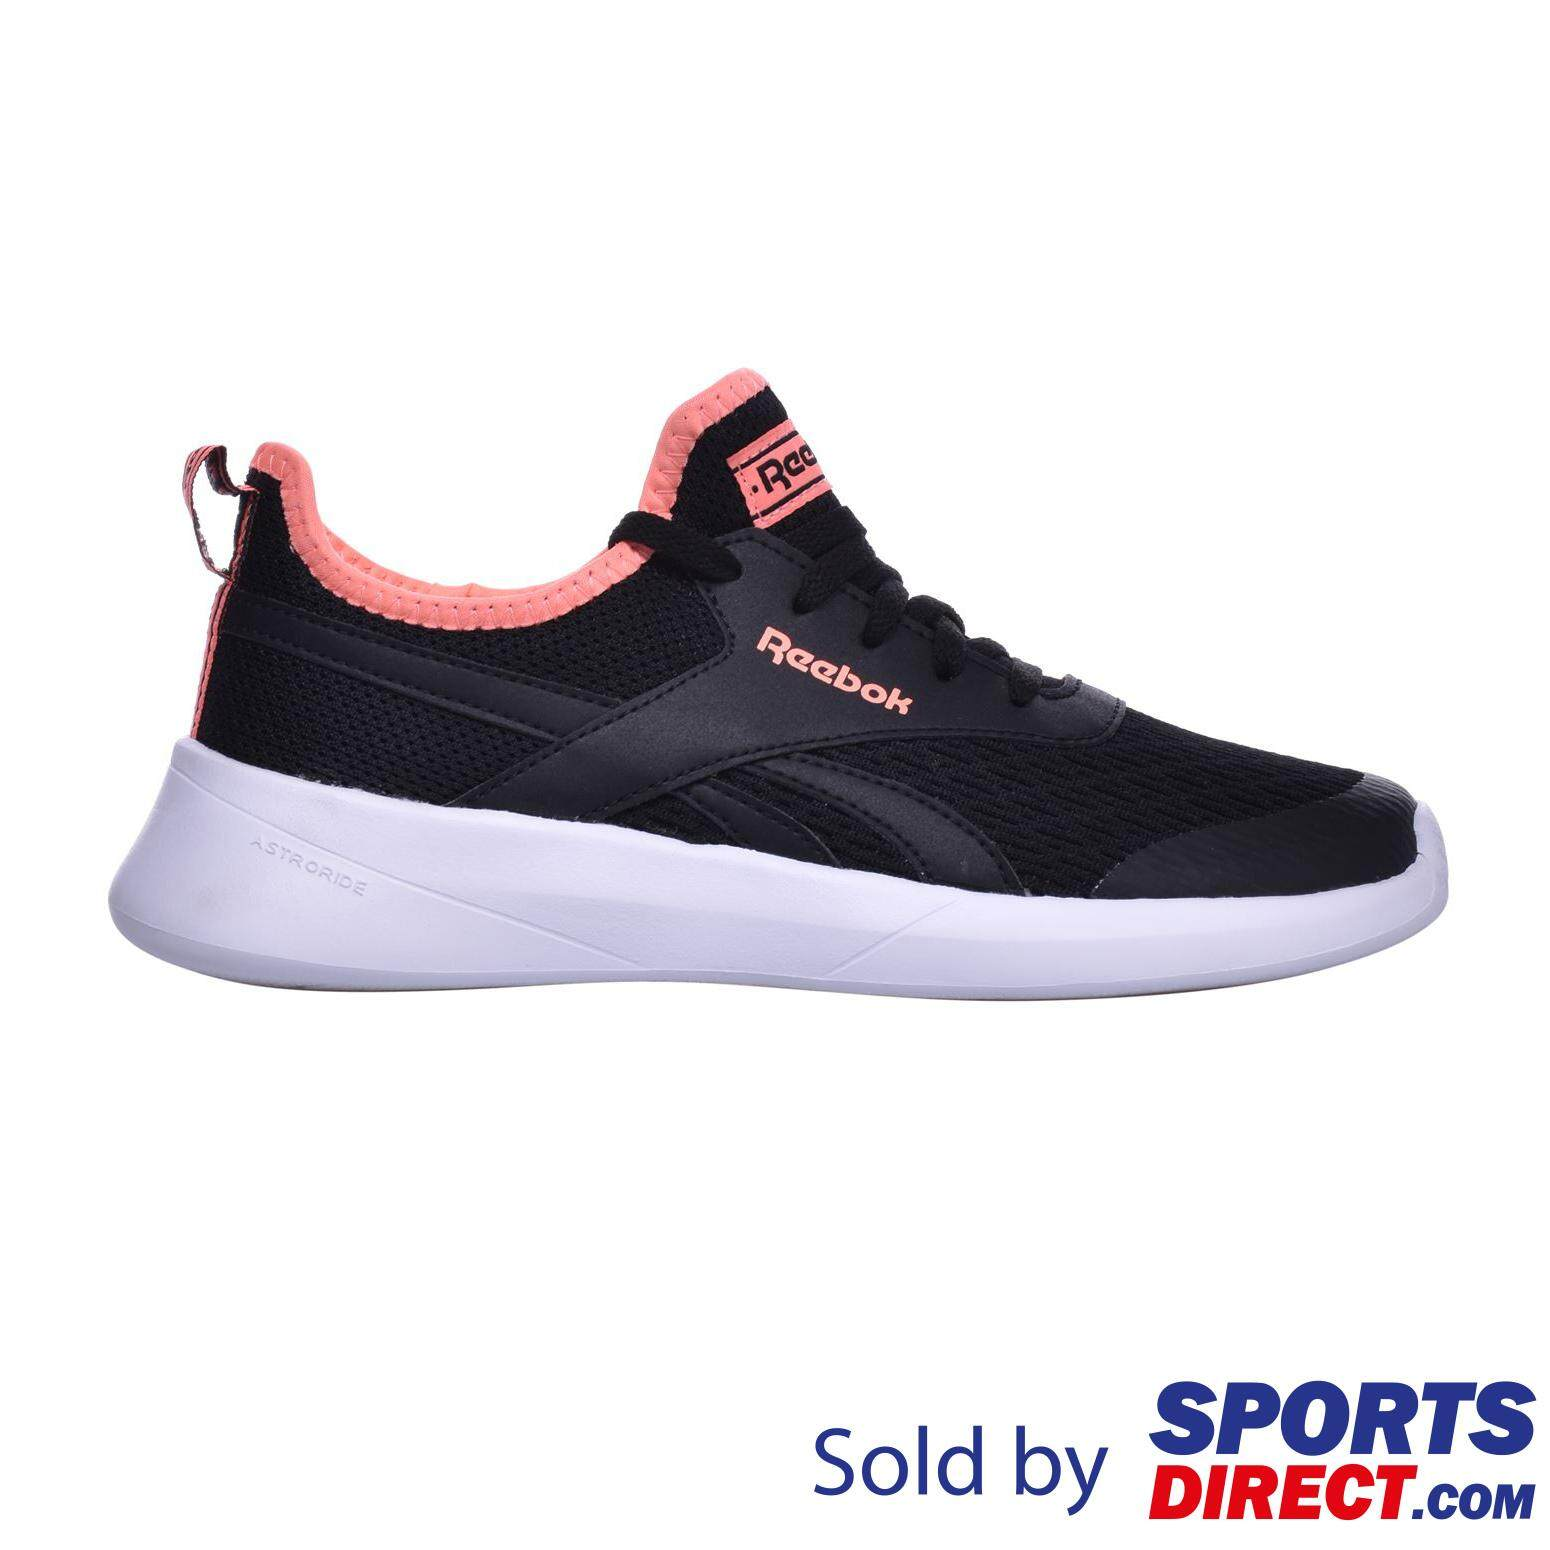 14827212ae59 Reebok Products for the Best Price in Malaysia